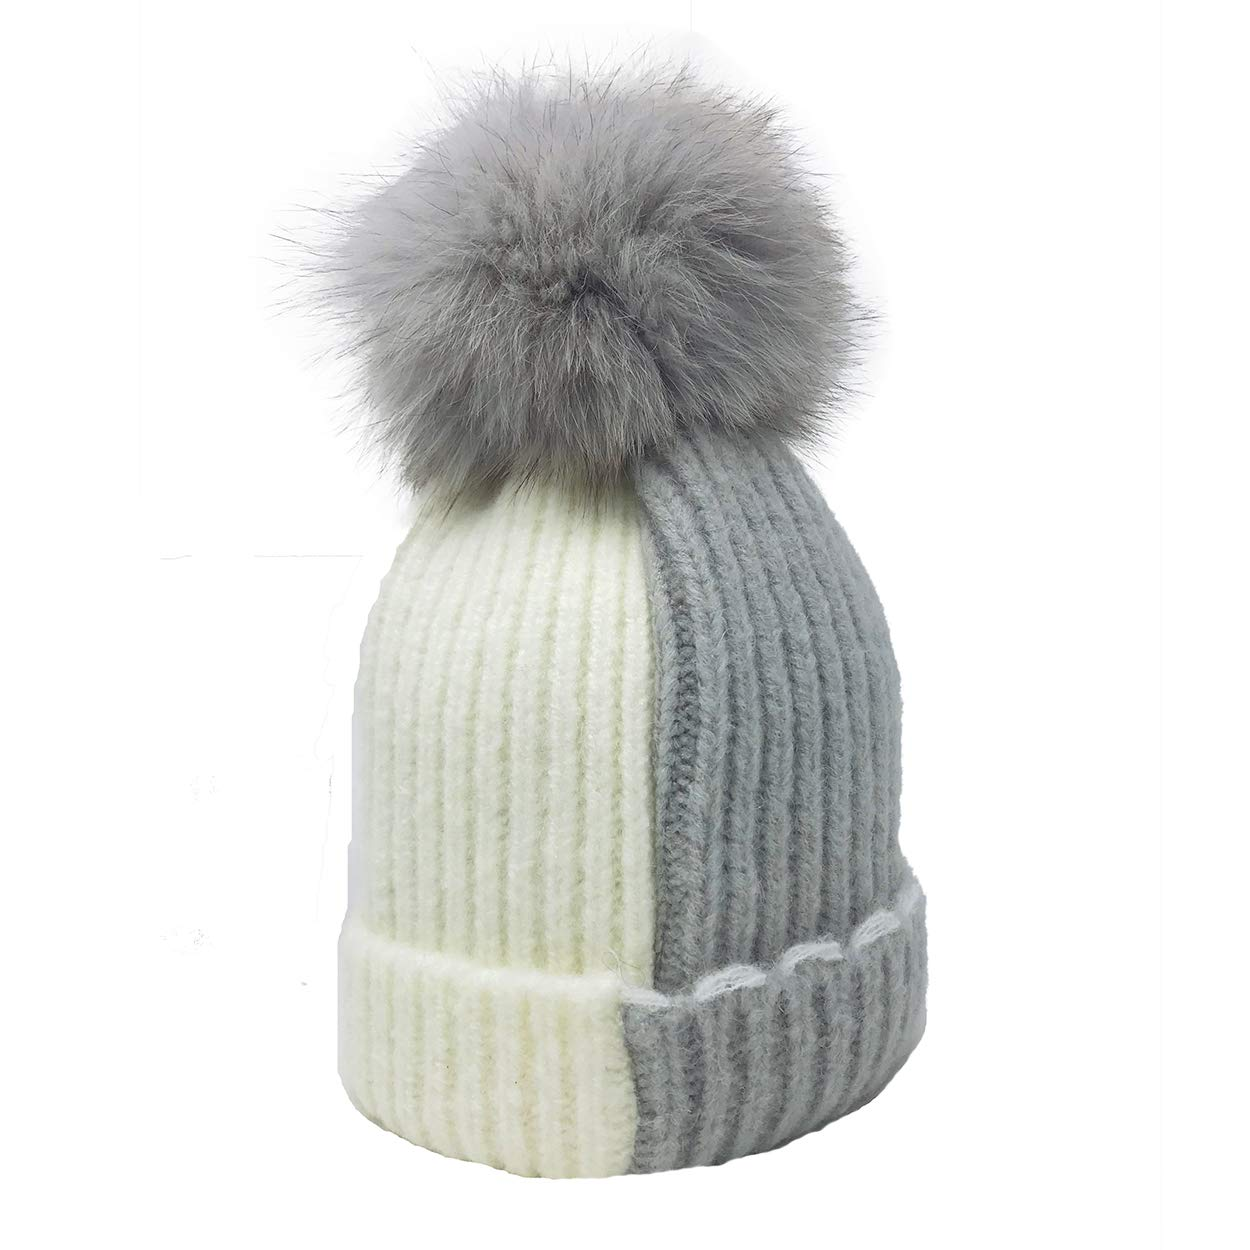 8d936ee8739 Galleon - Xsby Baby Kids Winter Knitted Faux Fur Ball Pom Pom Cap Beanie  Hat Baby Light Grey And White